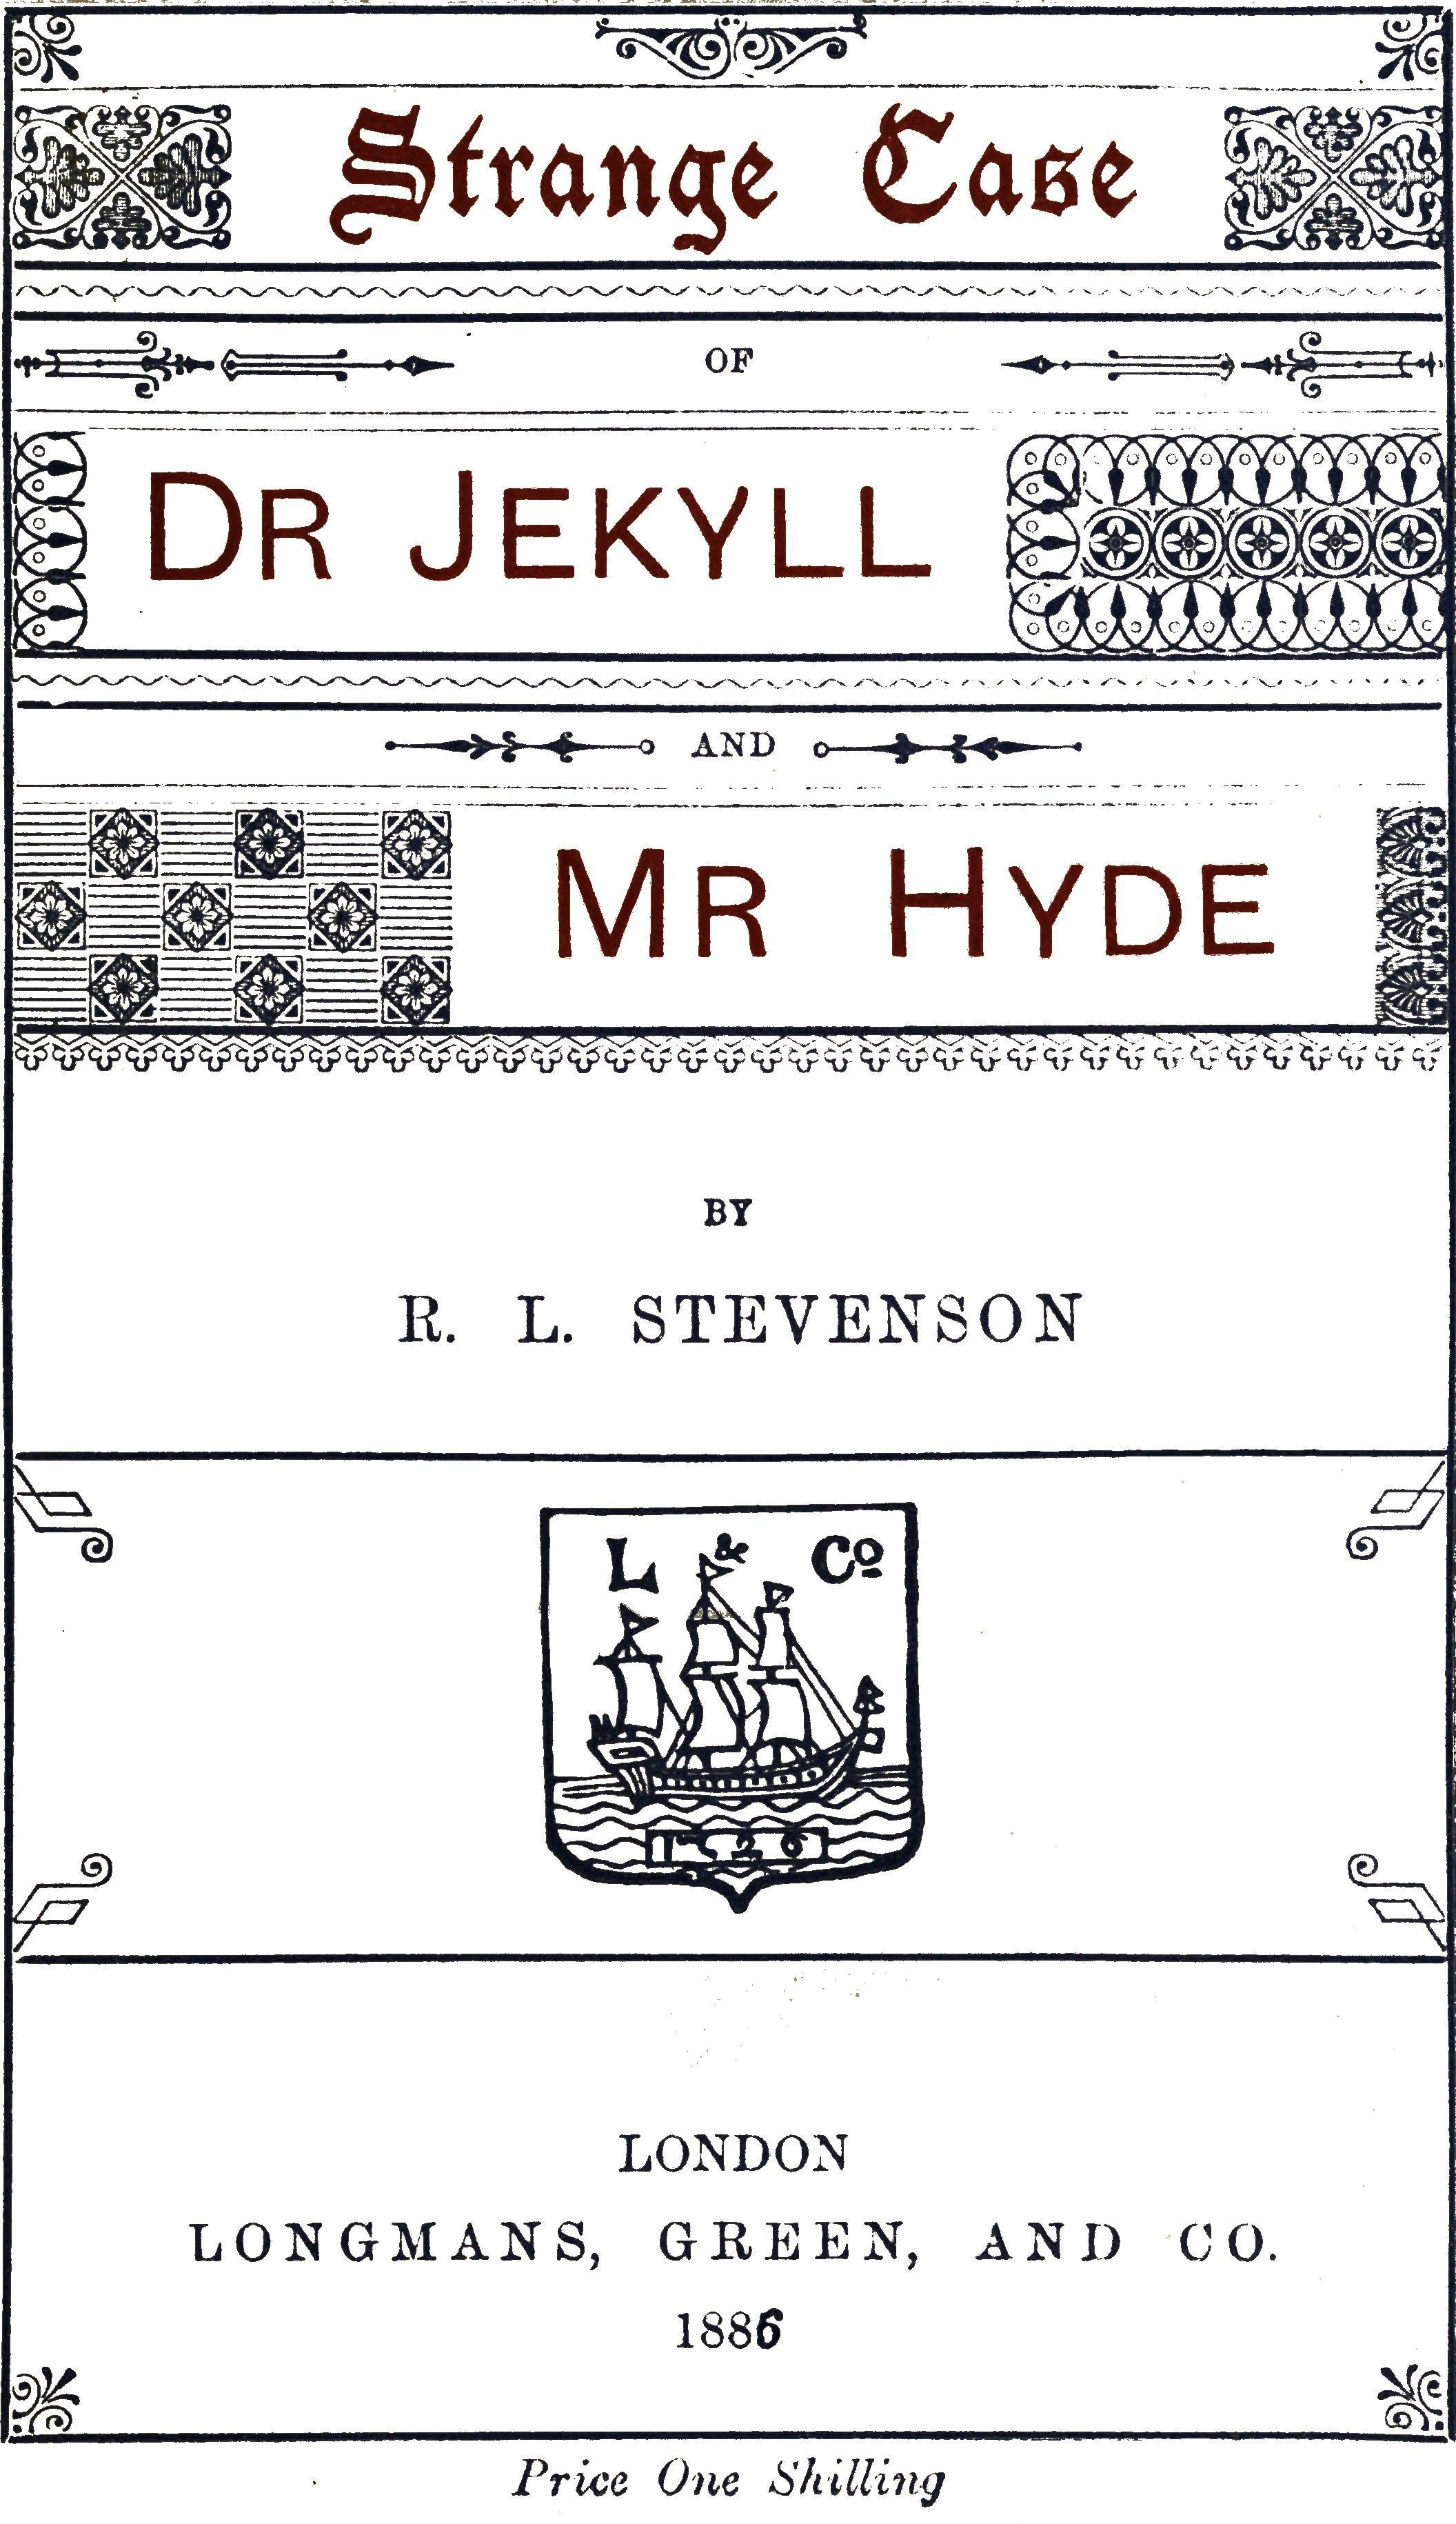 Strange Case of Dr Jekyll and Mr Hyde 001.jpg